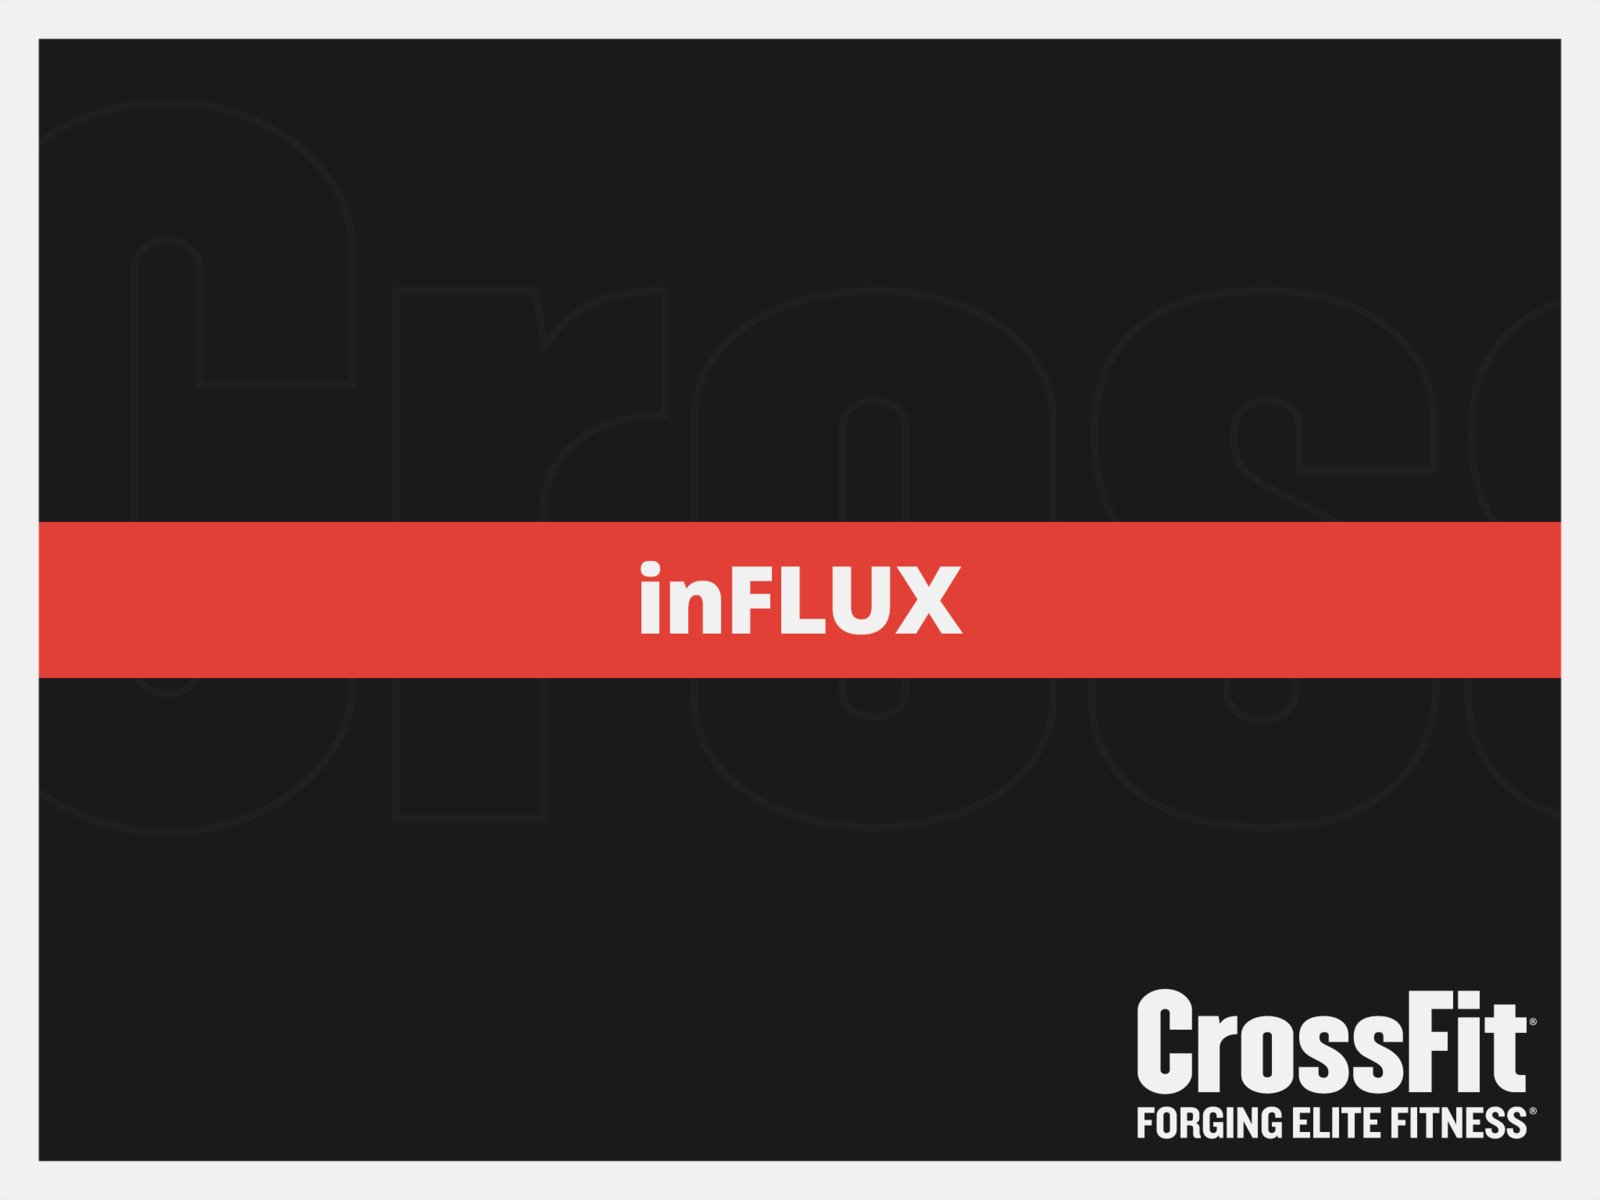 inFlux: A World in Constant Motion